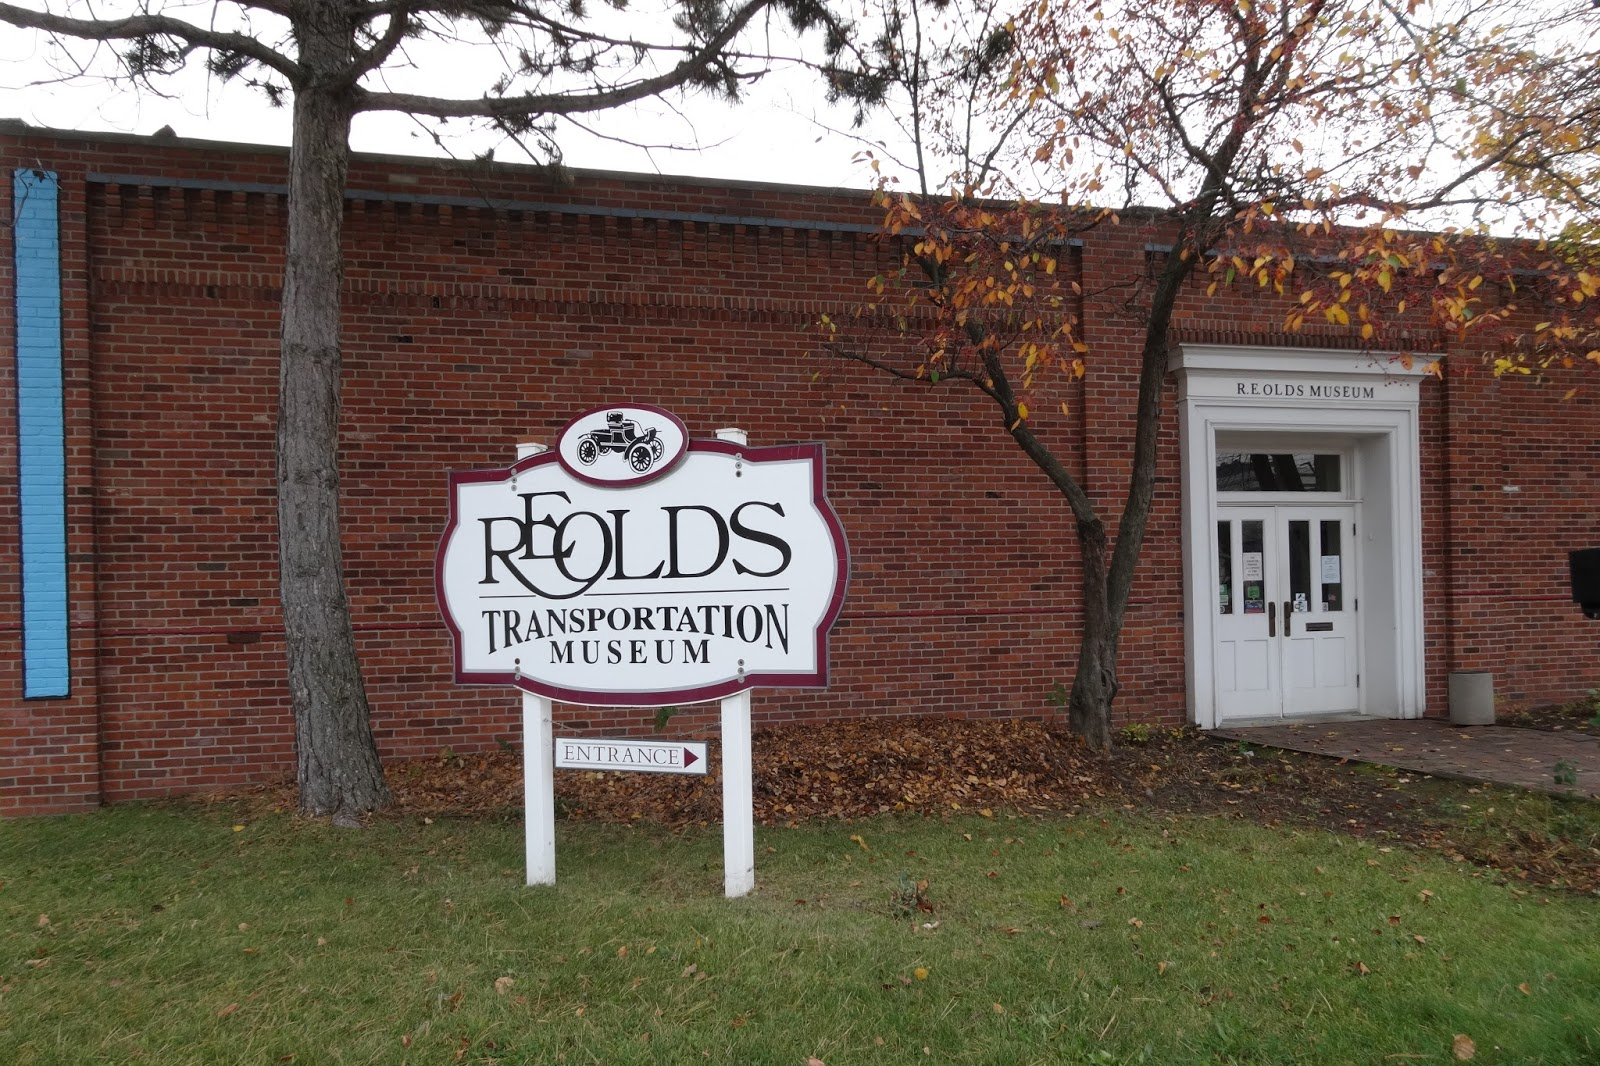 The RE Olds Transportation Museum